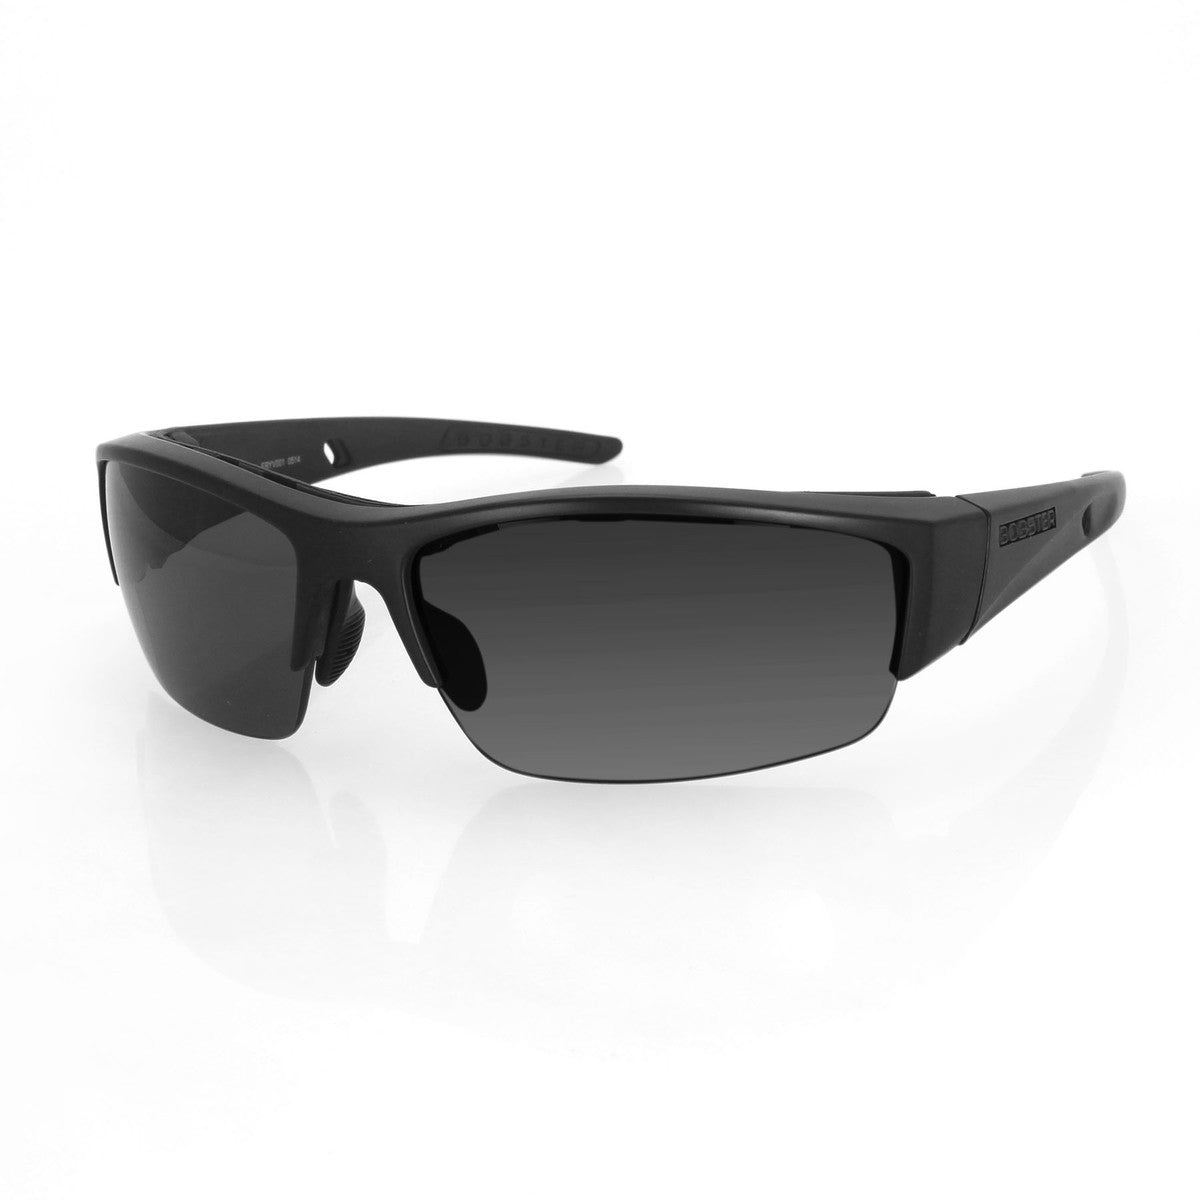 Bobster Ryval 2 Sunglasses